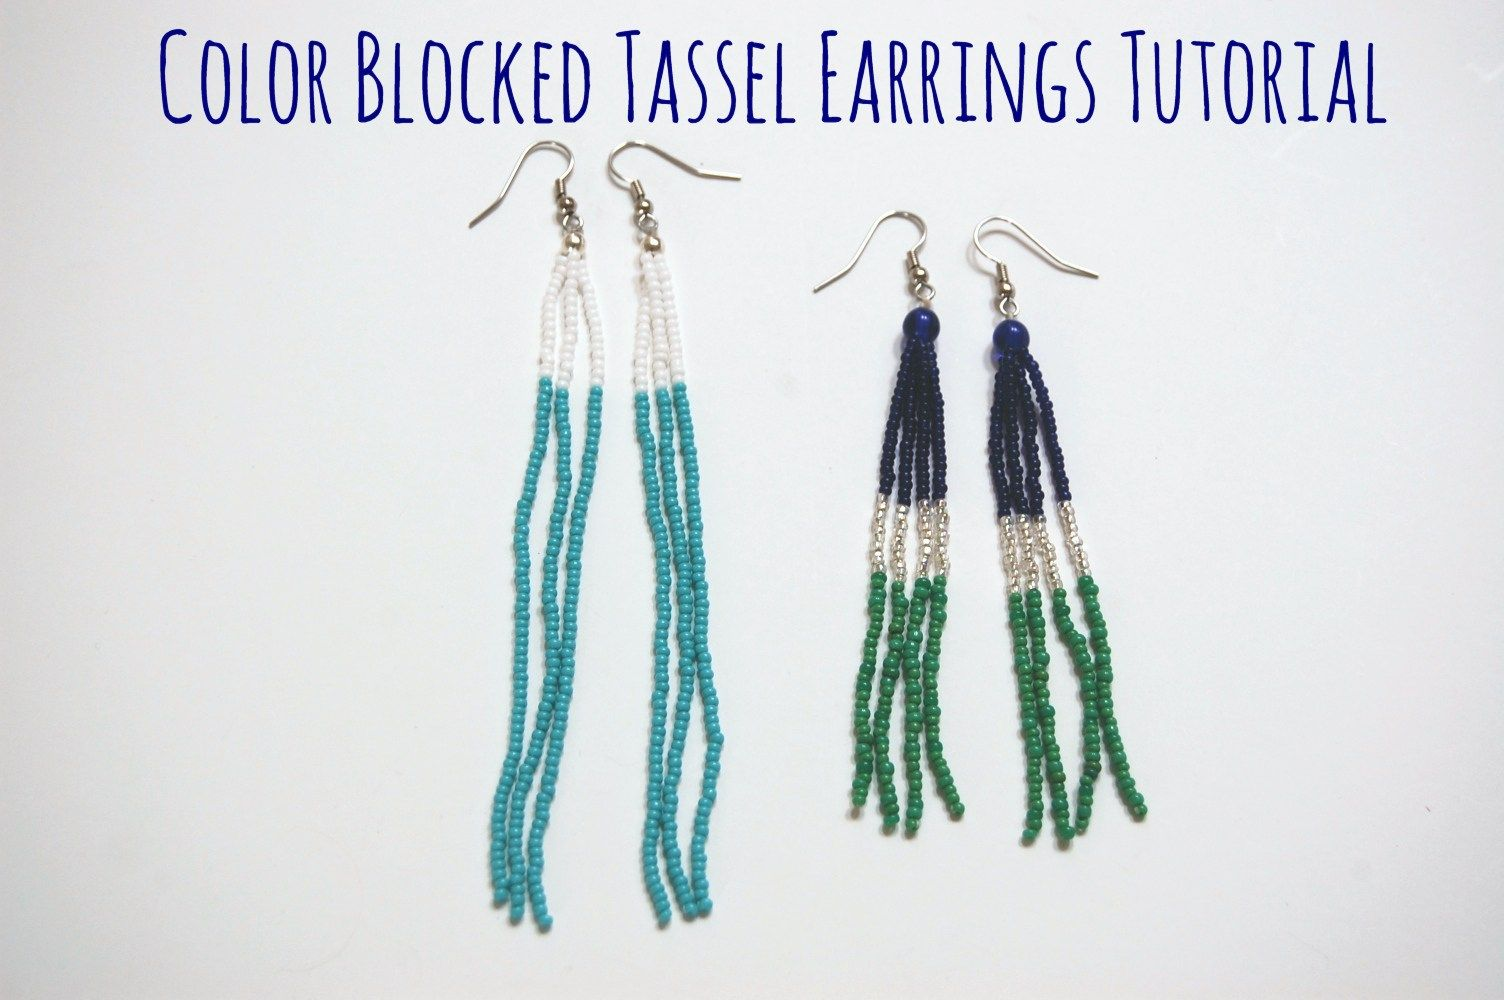 DIY Color Bloack Beaded Tassel Earrings Tutorial